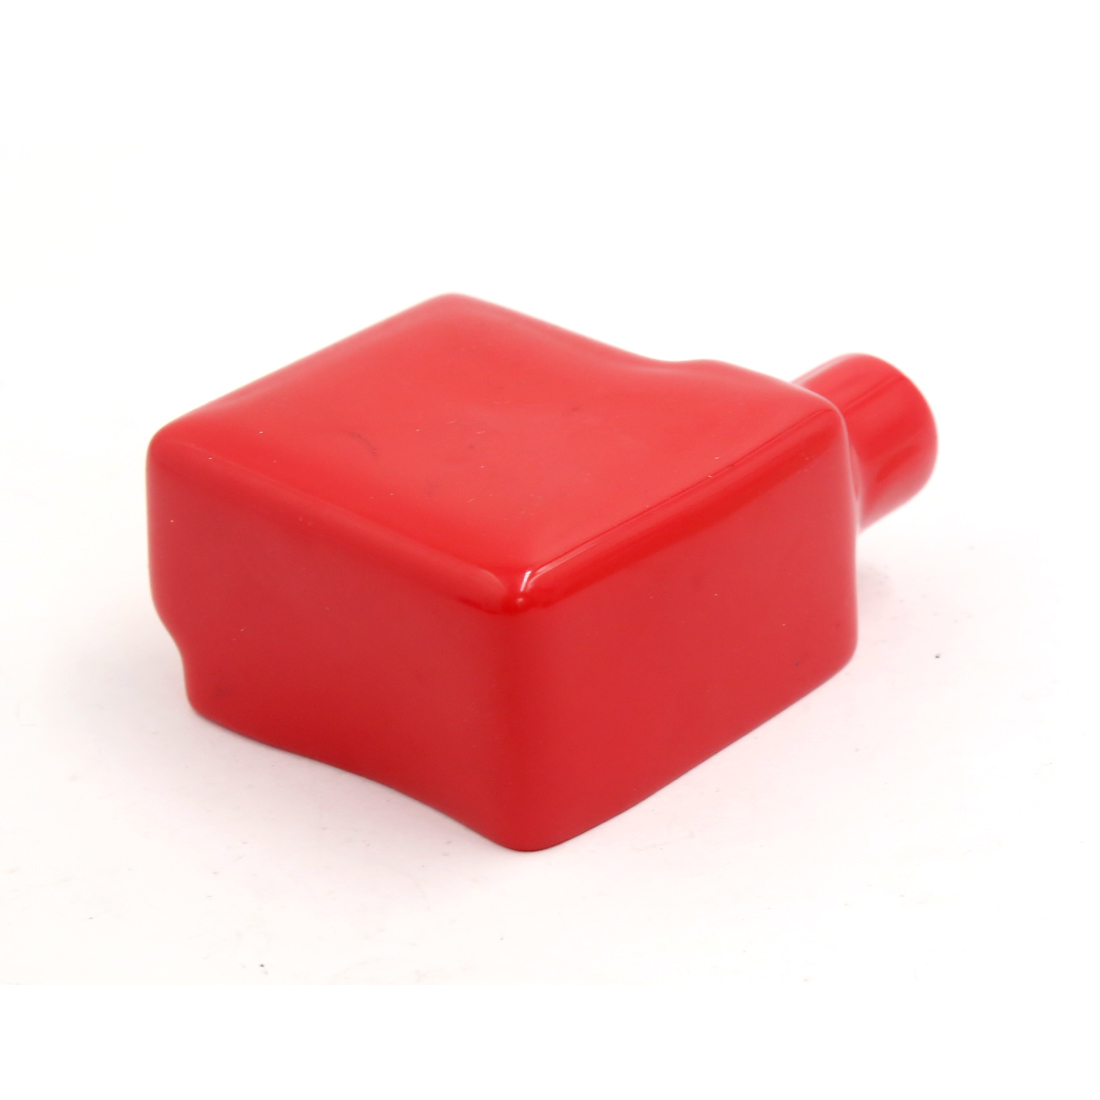 Universal PVC Battery Terminal Insulating Protector Covers Red 75 x 60 x 33mm